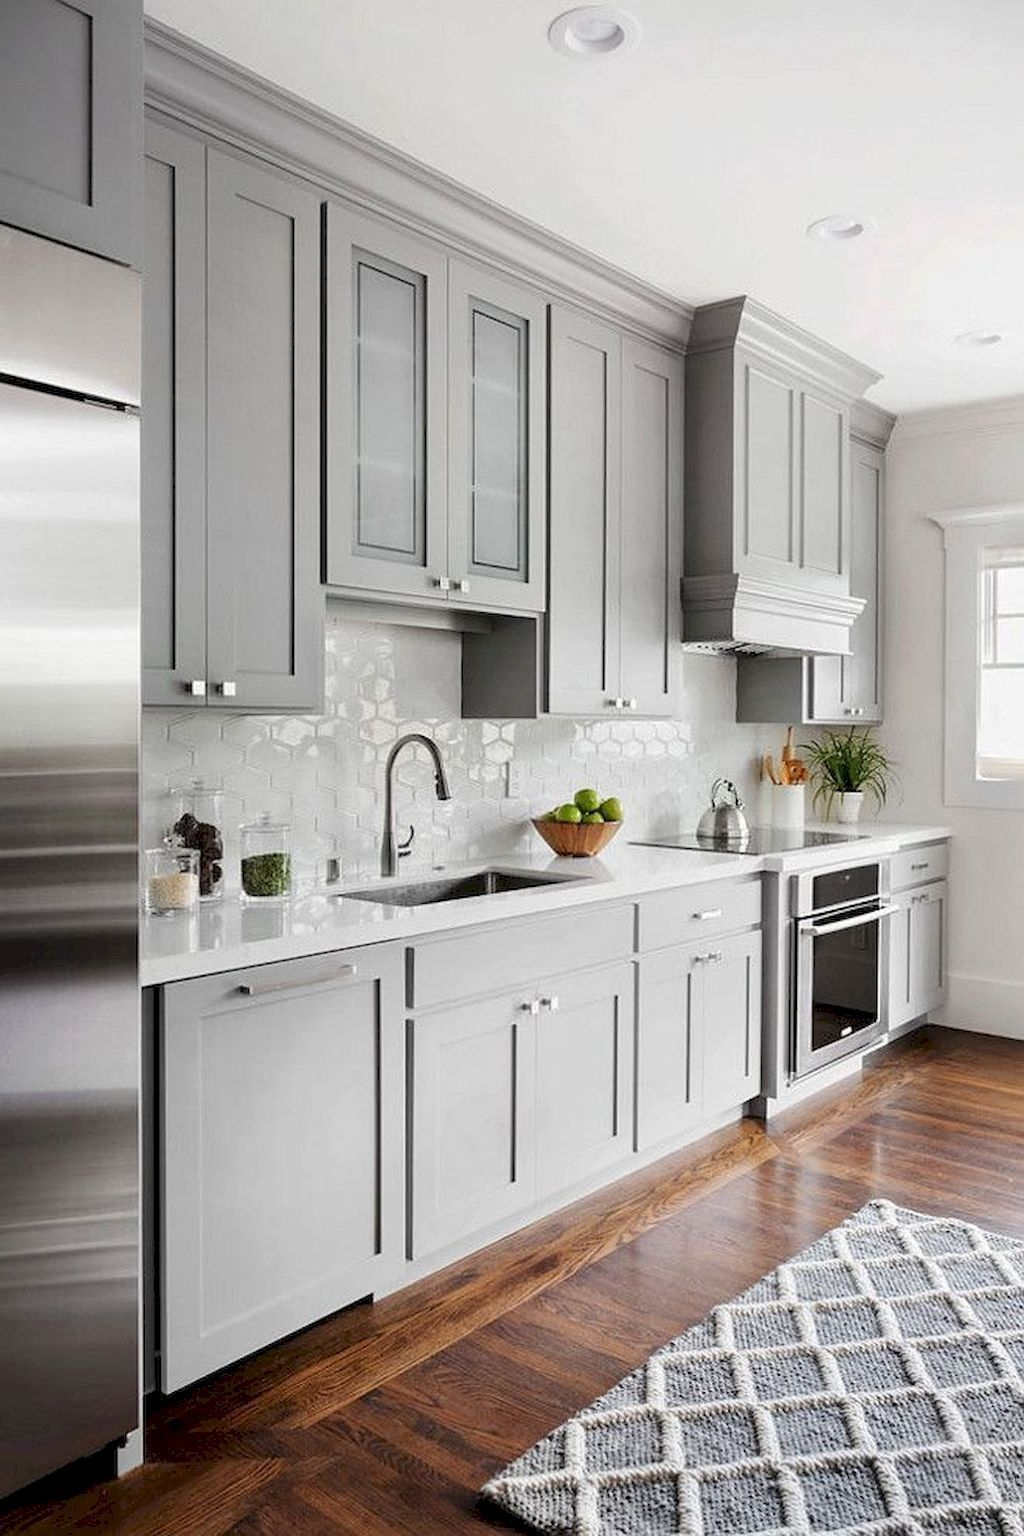 25 Ways To Style Grey Kitchen Cabinets Shaker Style Kitchen Cabinets Grey Kitchen Designs Kitchen Cabinet Styles